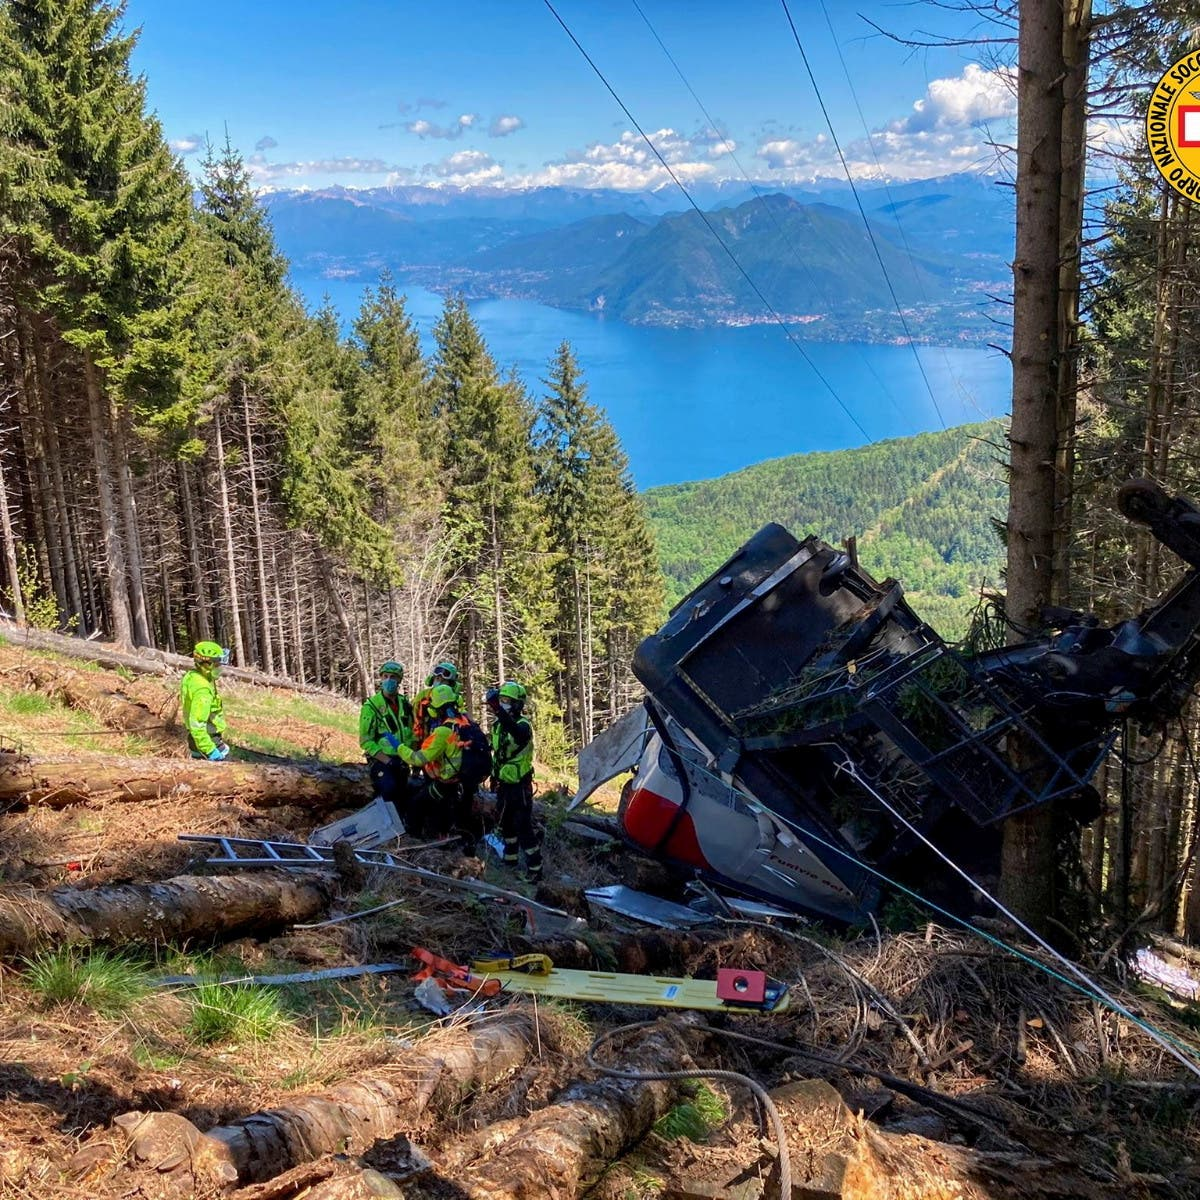 Italy probes cable car crash that killed 14 as child survivor recovers